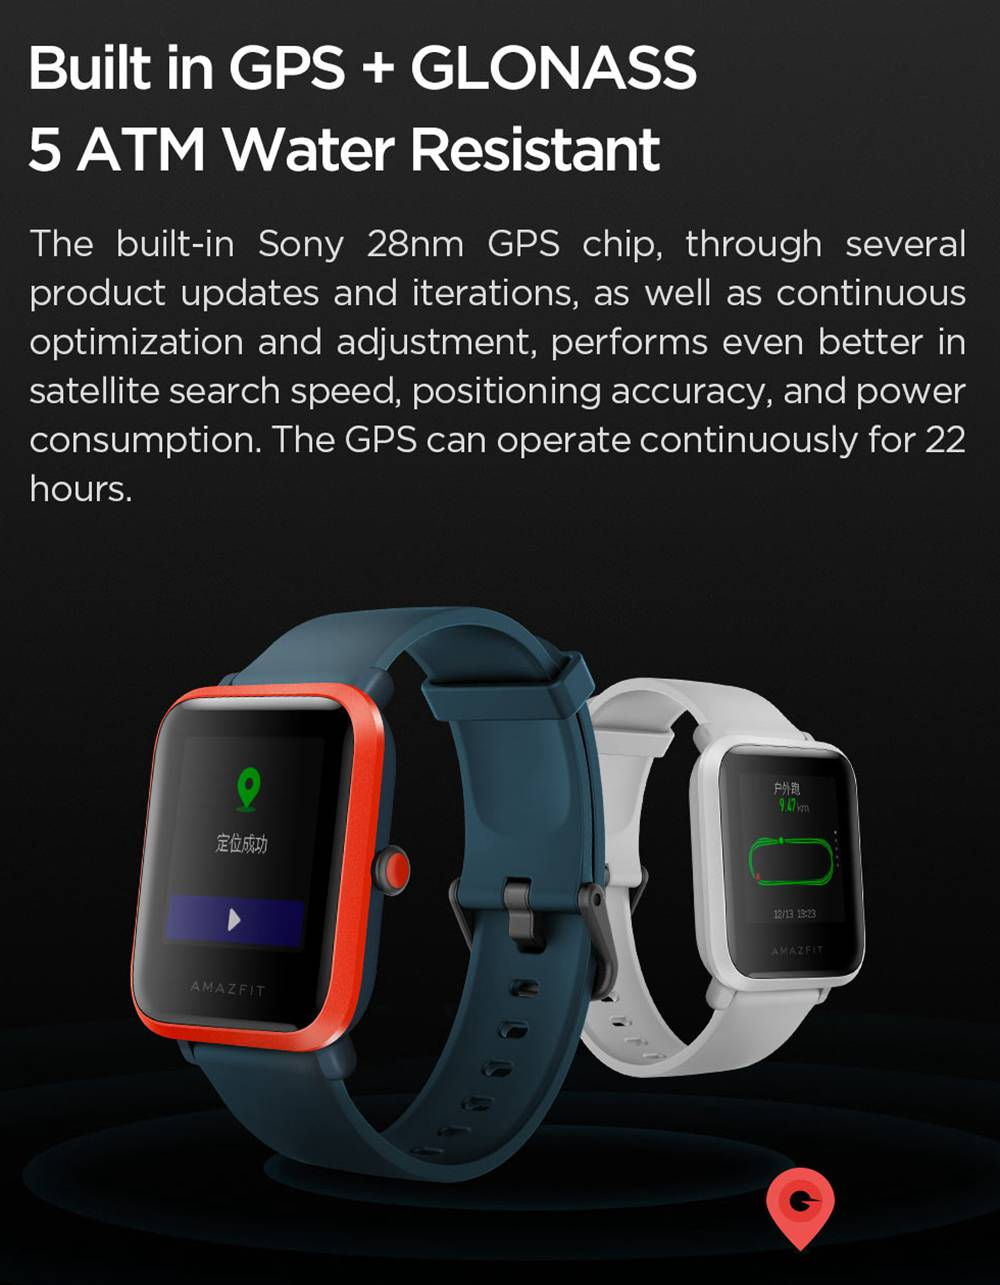 Huami Amazfit Bip S Smartwatch Heart Rate 1.28 Inch Transflective Color TFT Touch Screen IP68 Water Resistant 40 Days Standby GPS + Glonass Positioning Support Multi-language - Black